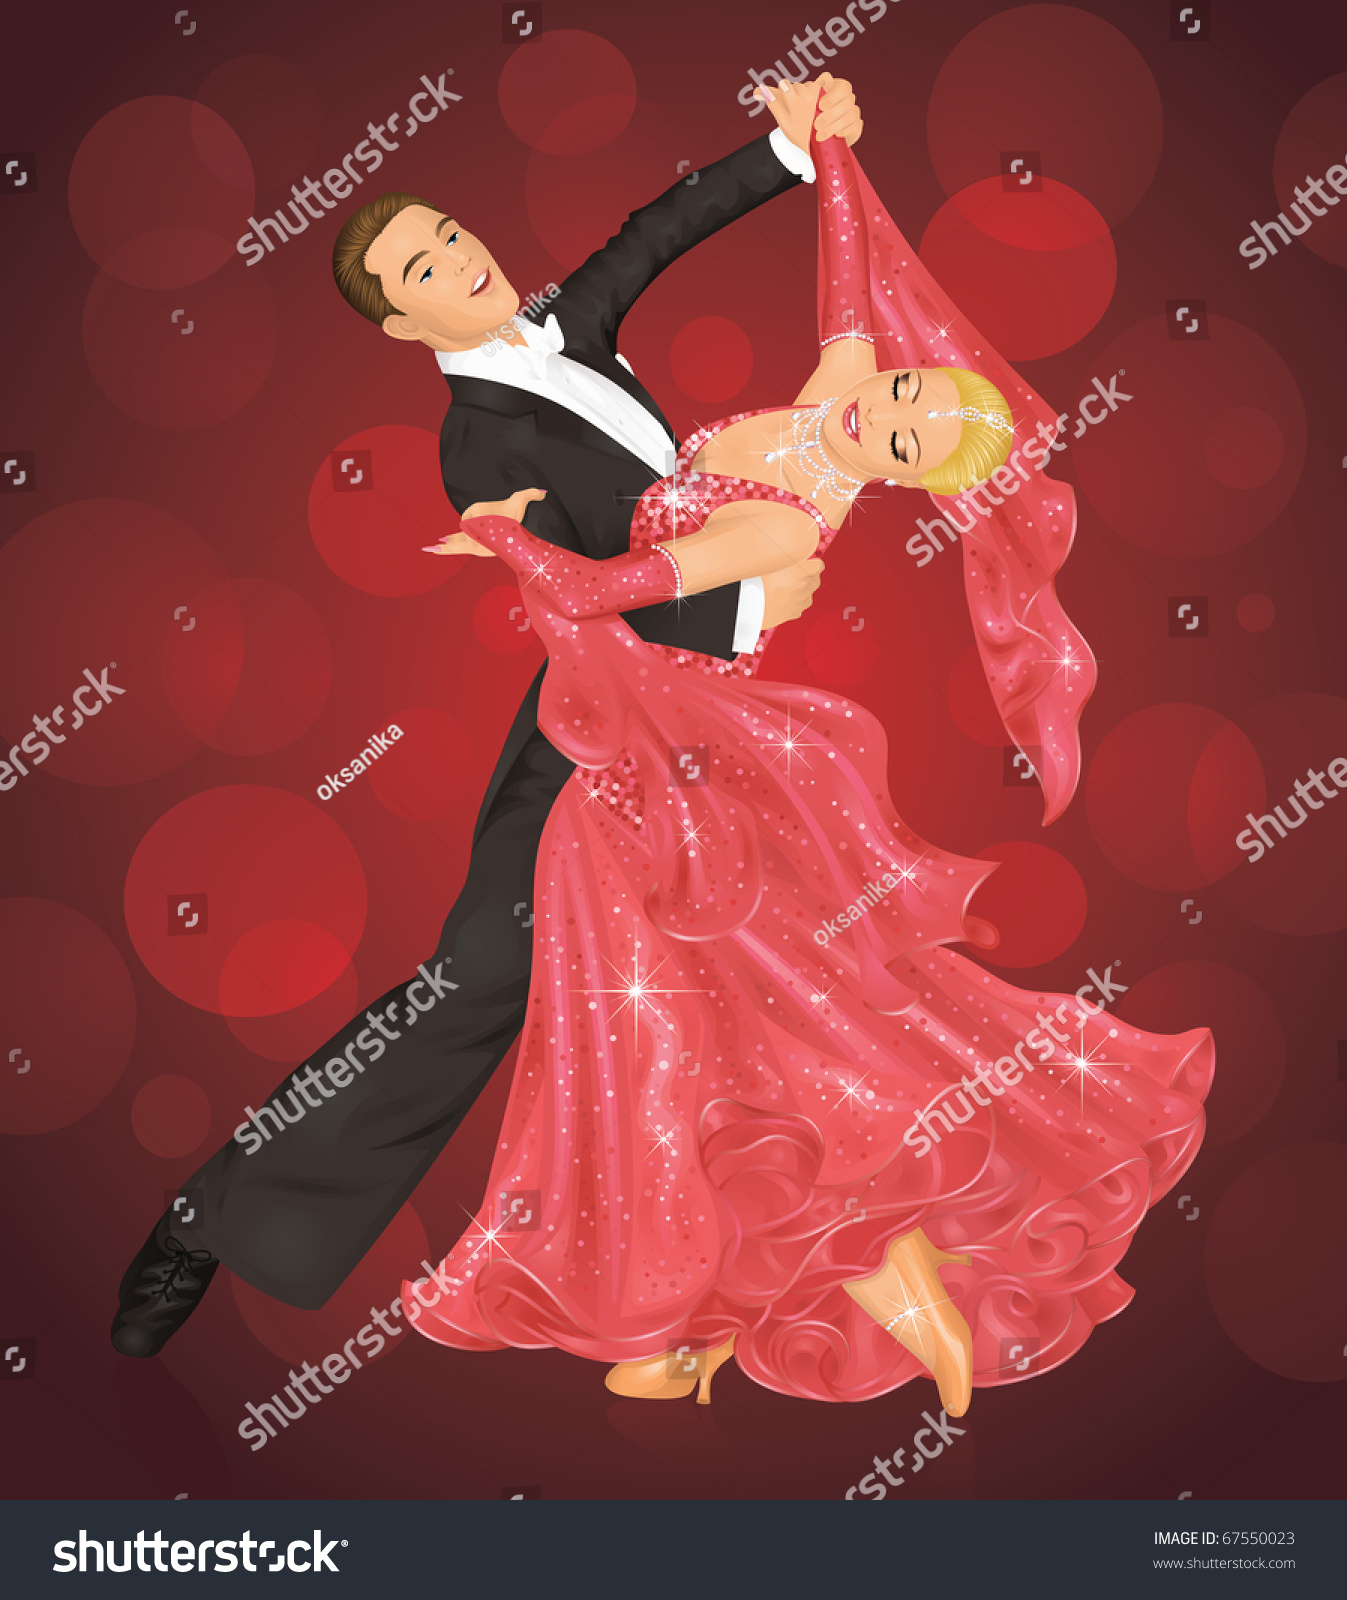 Couple Is Ballroom Dancing On The Red Background. Stock ...